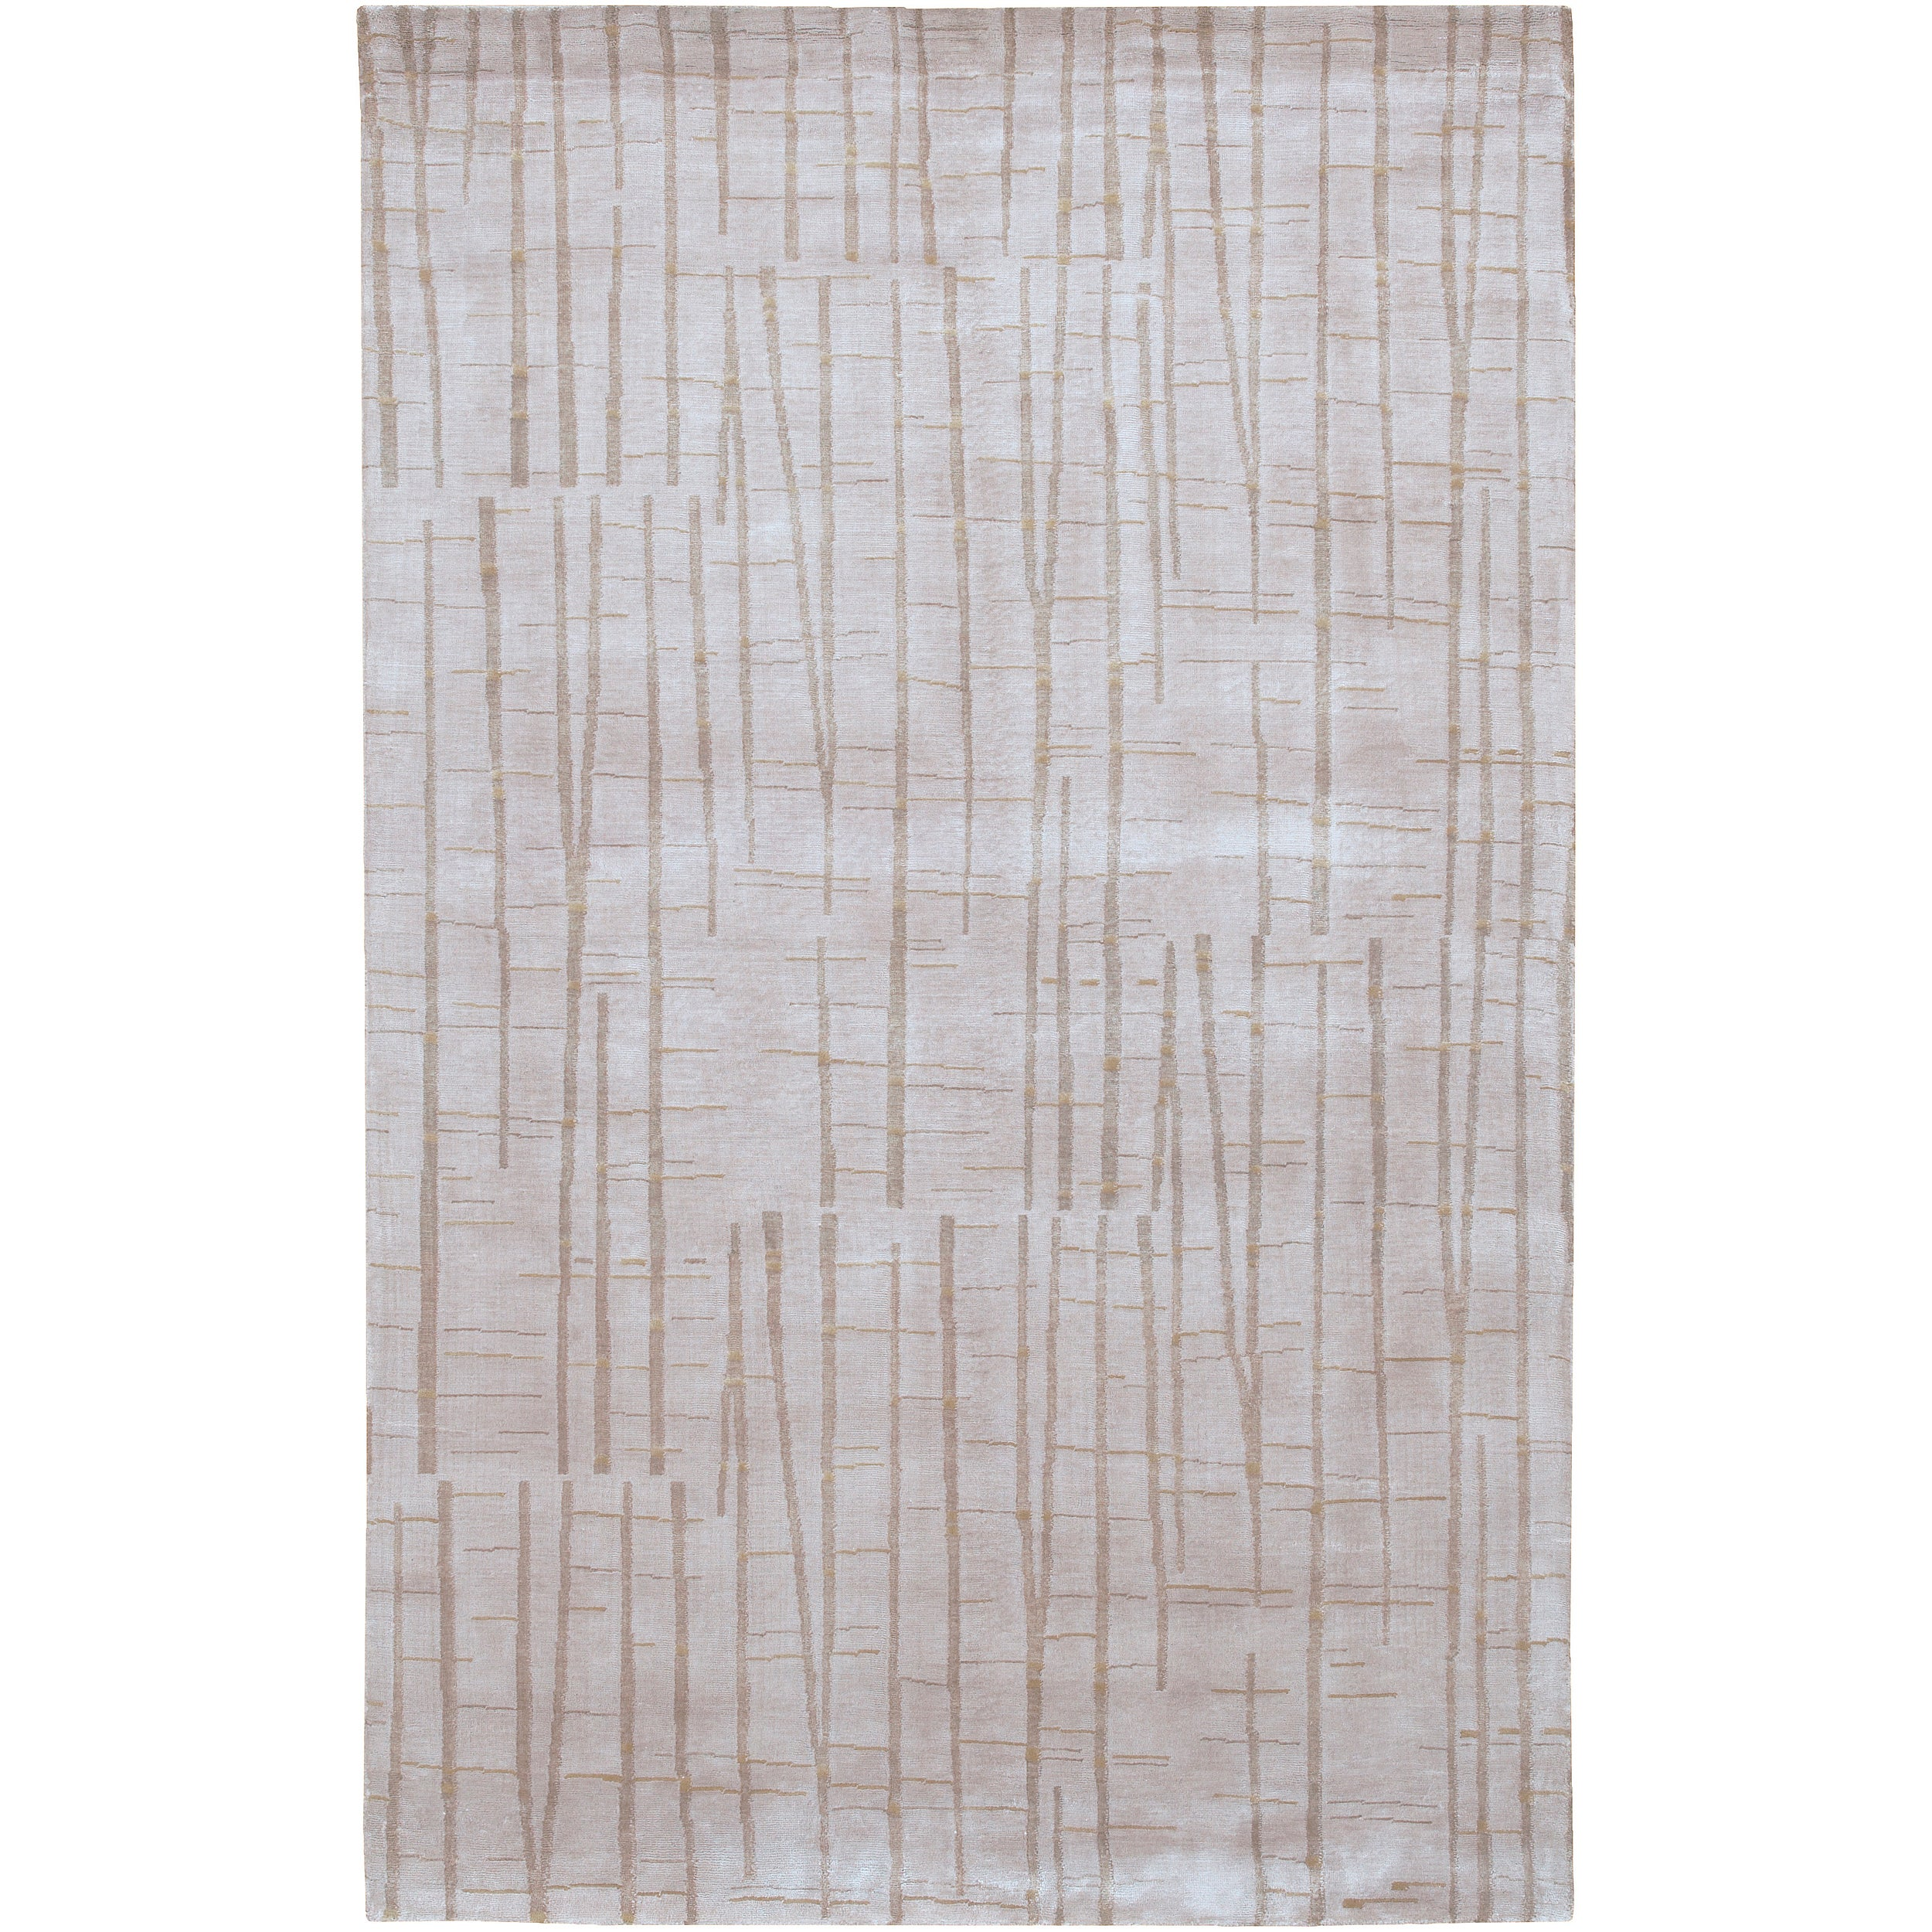 Julie Cohn Hand-knotted Coconino Beige Abstract Design Wool Rug (5' x 8')